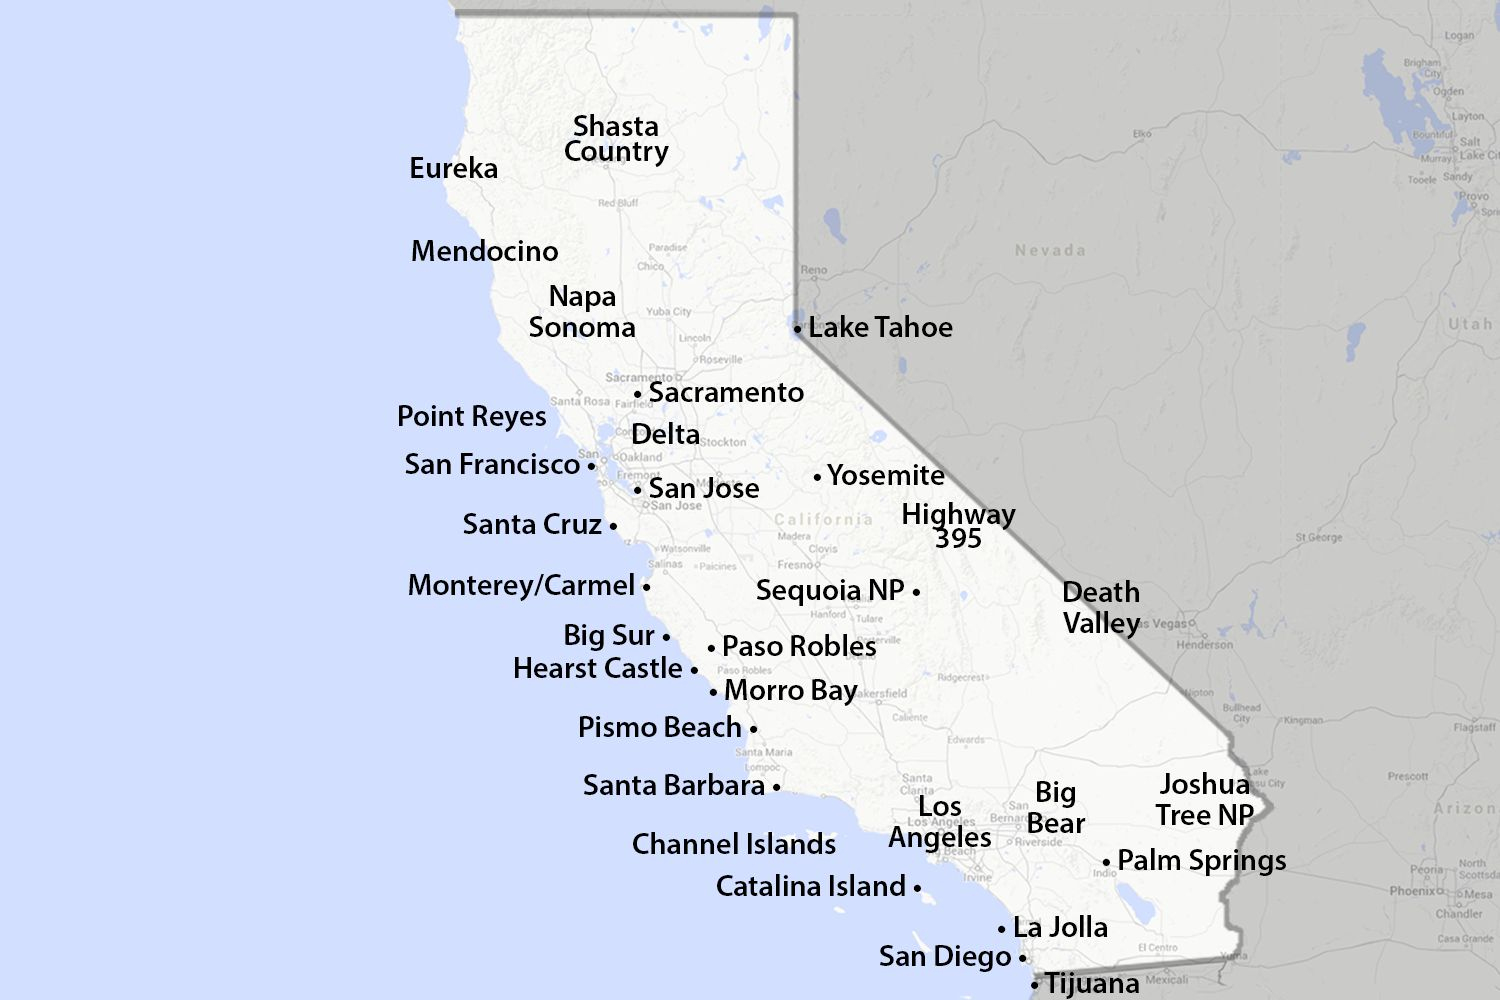 Ca Map Wp X Bffcdfceefb Road Maps Where Is Paso Robles California On - Where Is Paso Robles California On The Map